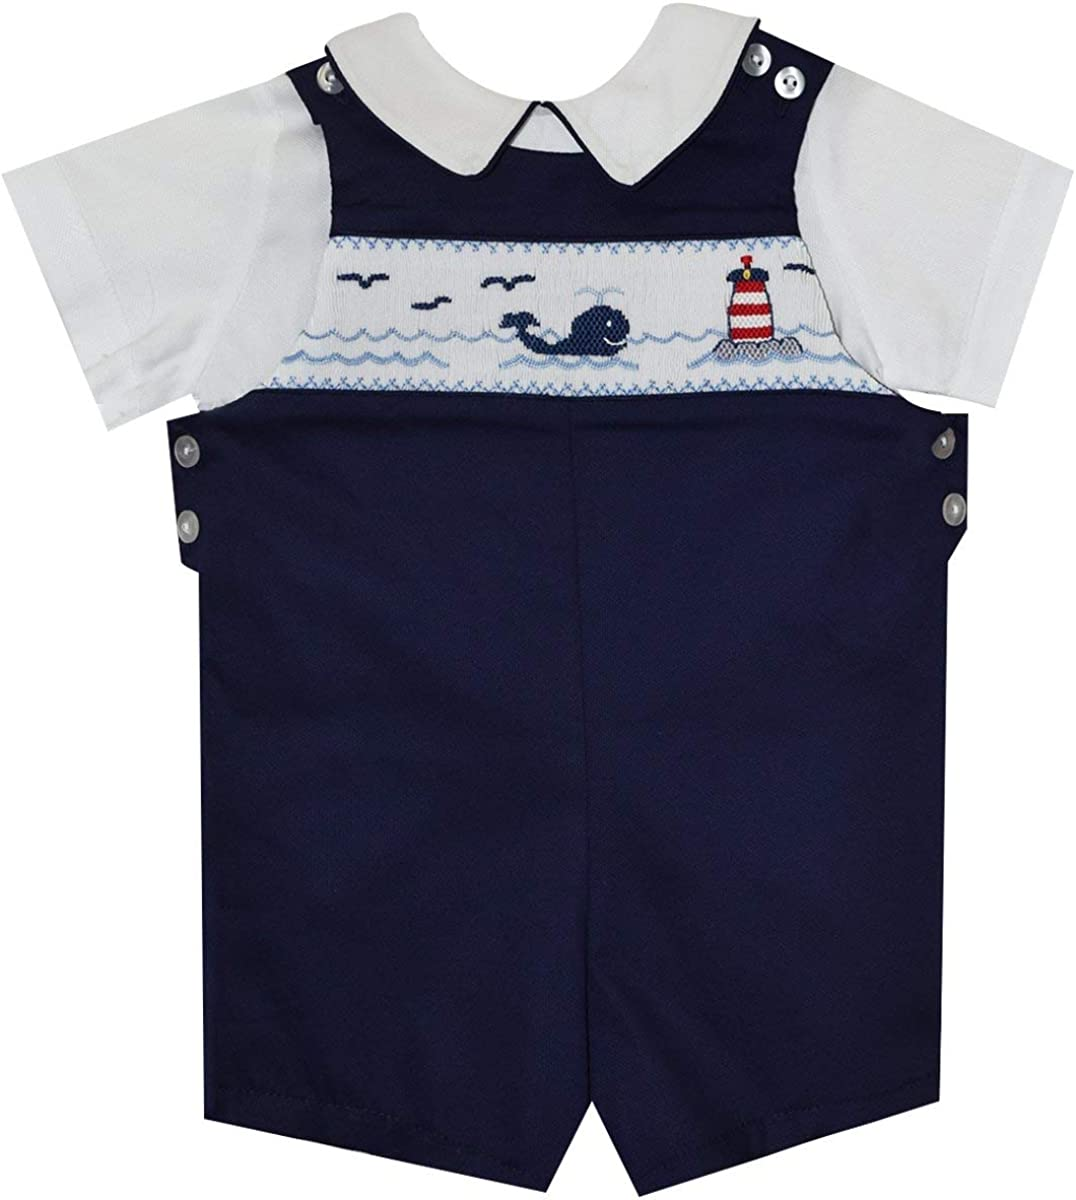 BETTI TERRELL Whales and Lt House Smocked Boys Shortall and Shirt SS